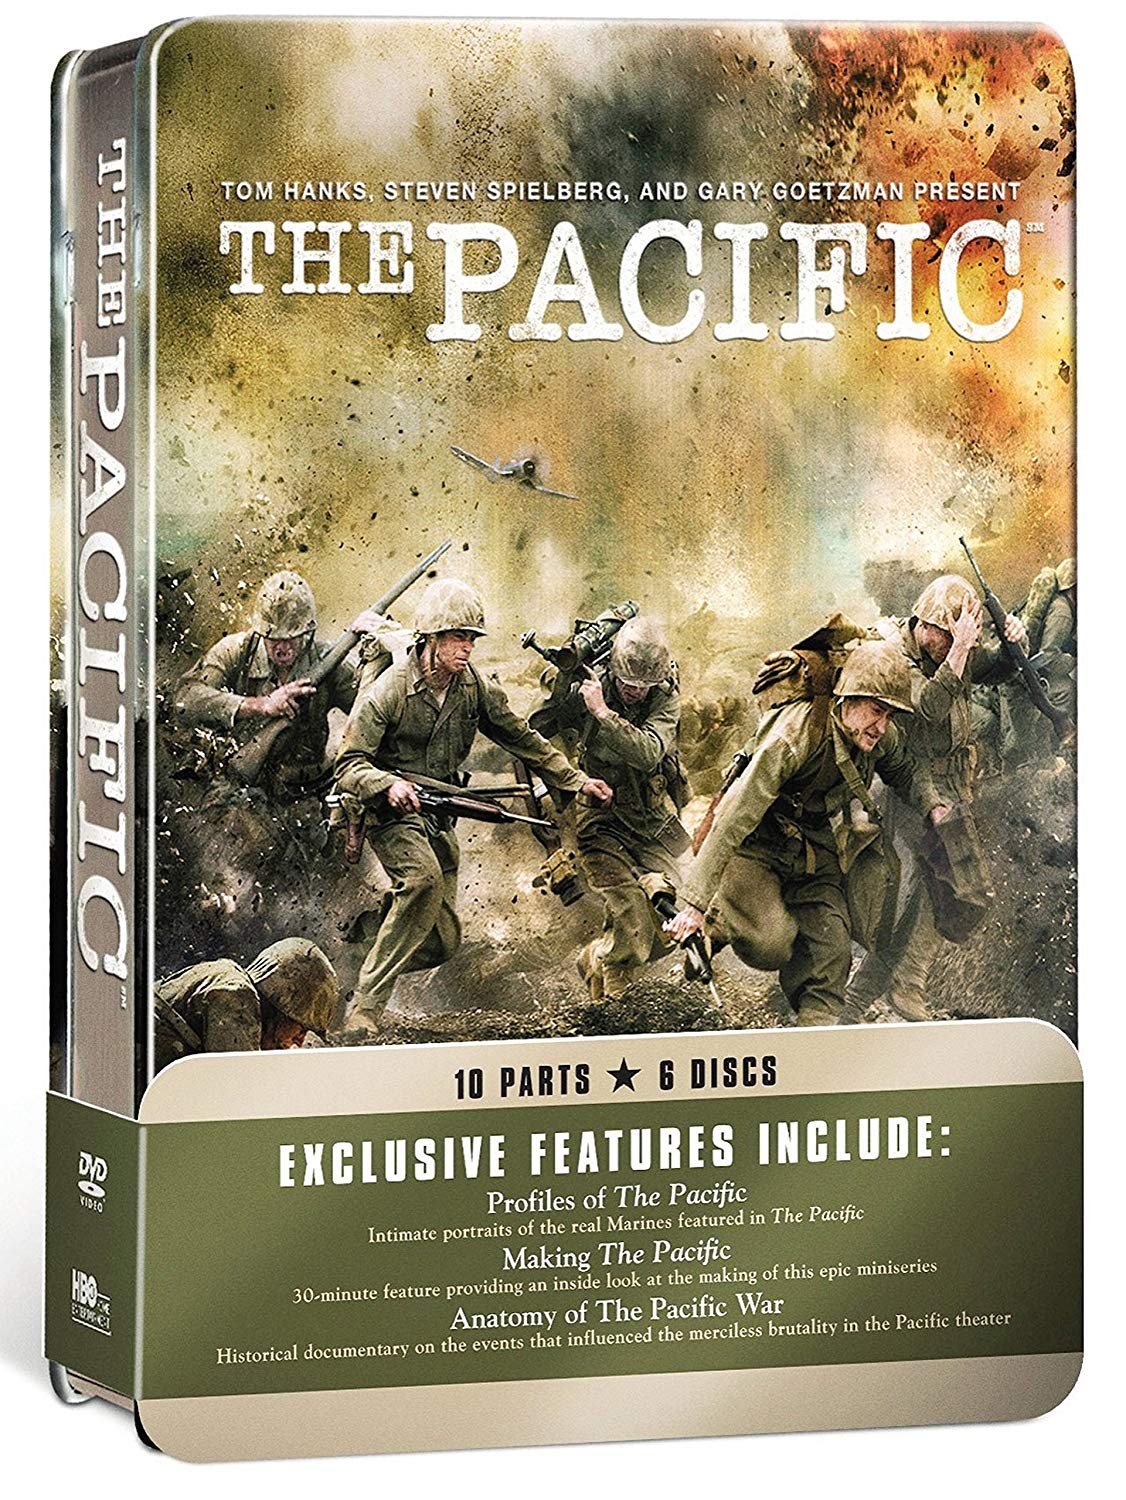 Tv Show cover: The Pacific